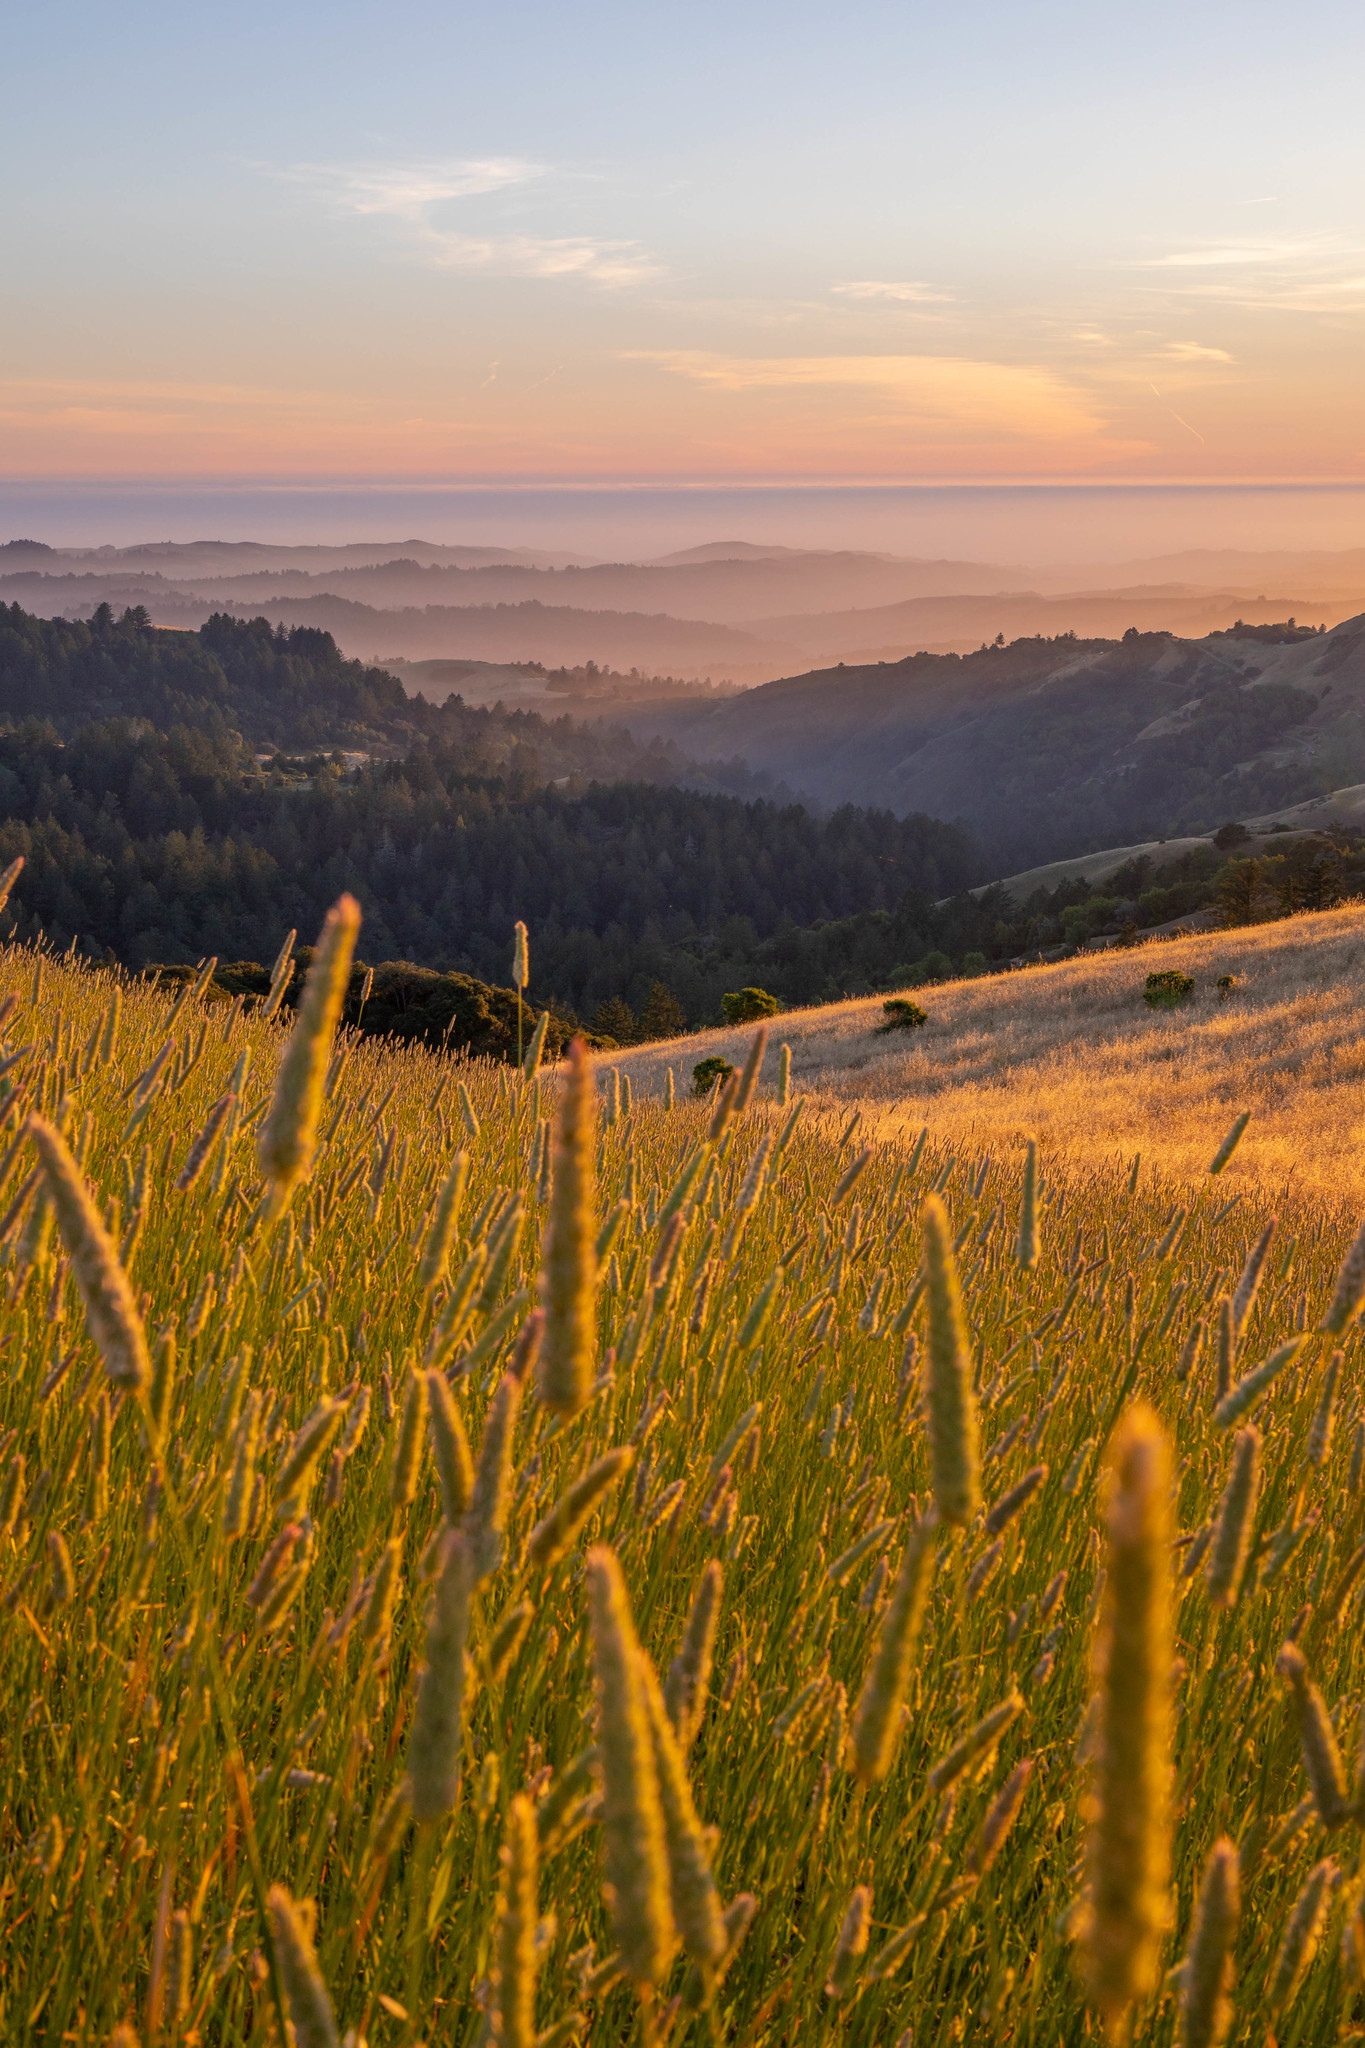 06.23. Russian Ridge Open Space Preserve